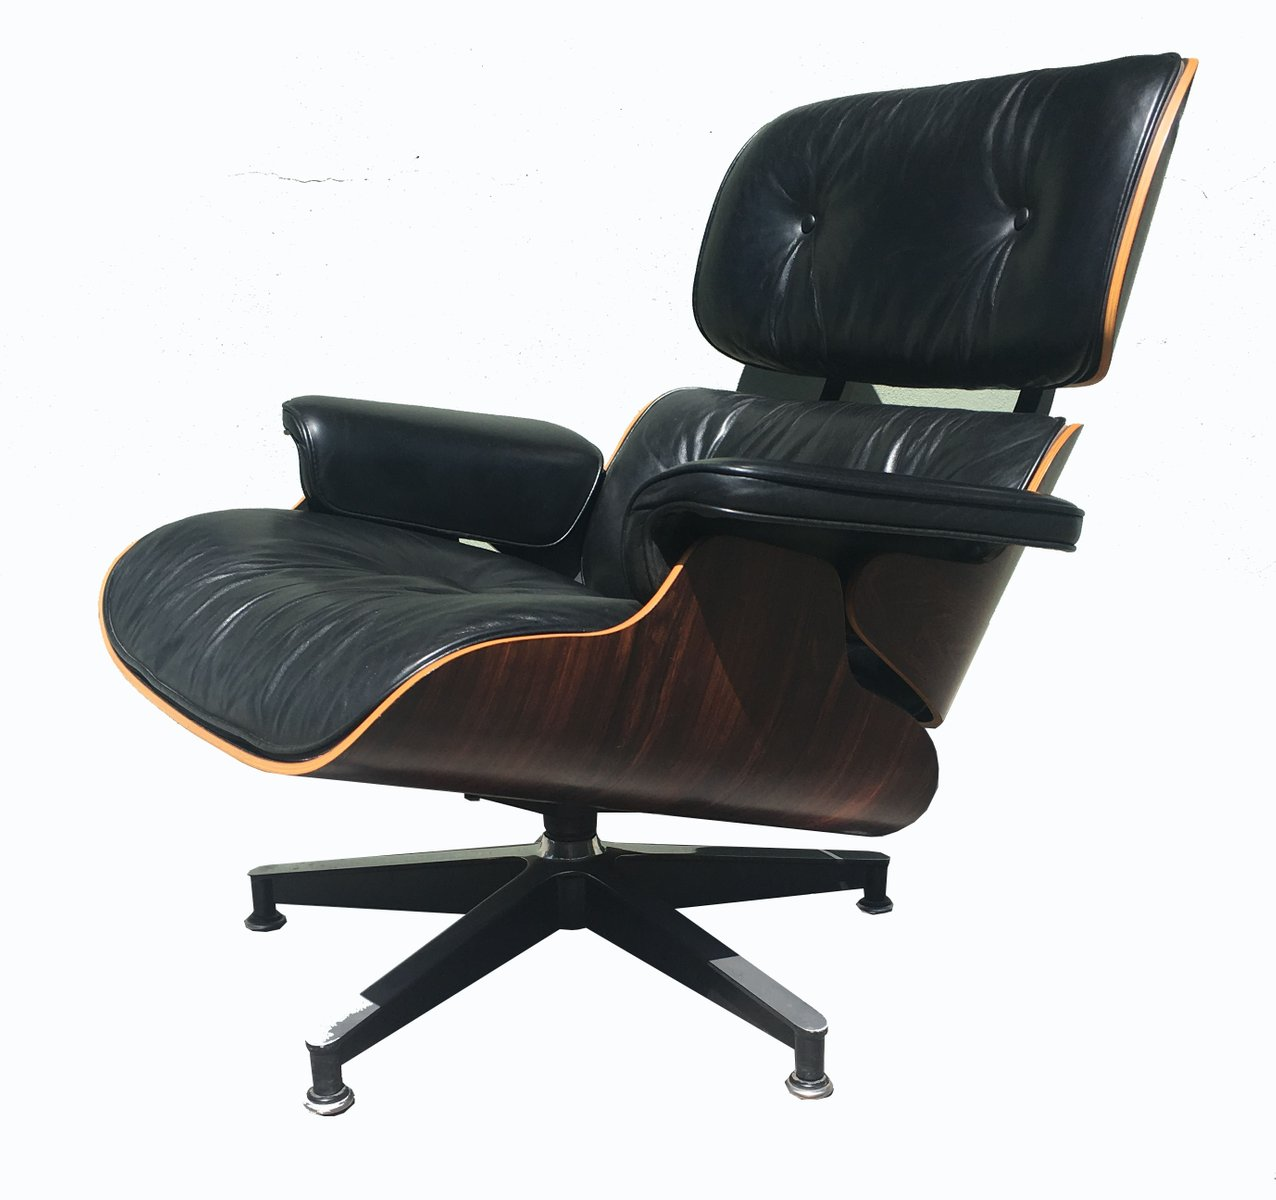 670 & 671 Lounge Chair & Ottoman by Charles and Ray Eames for Herman